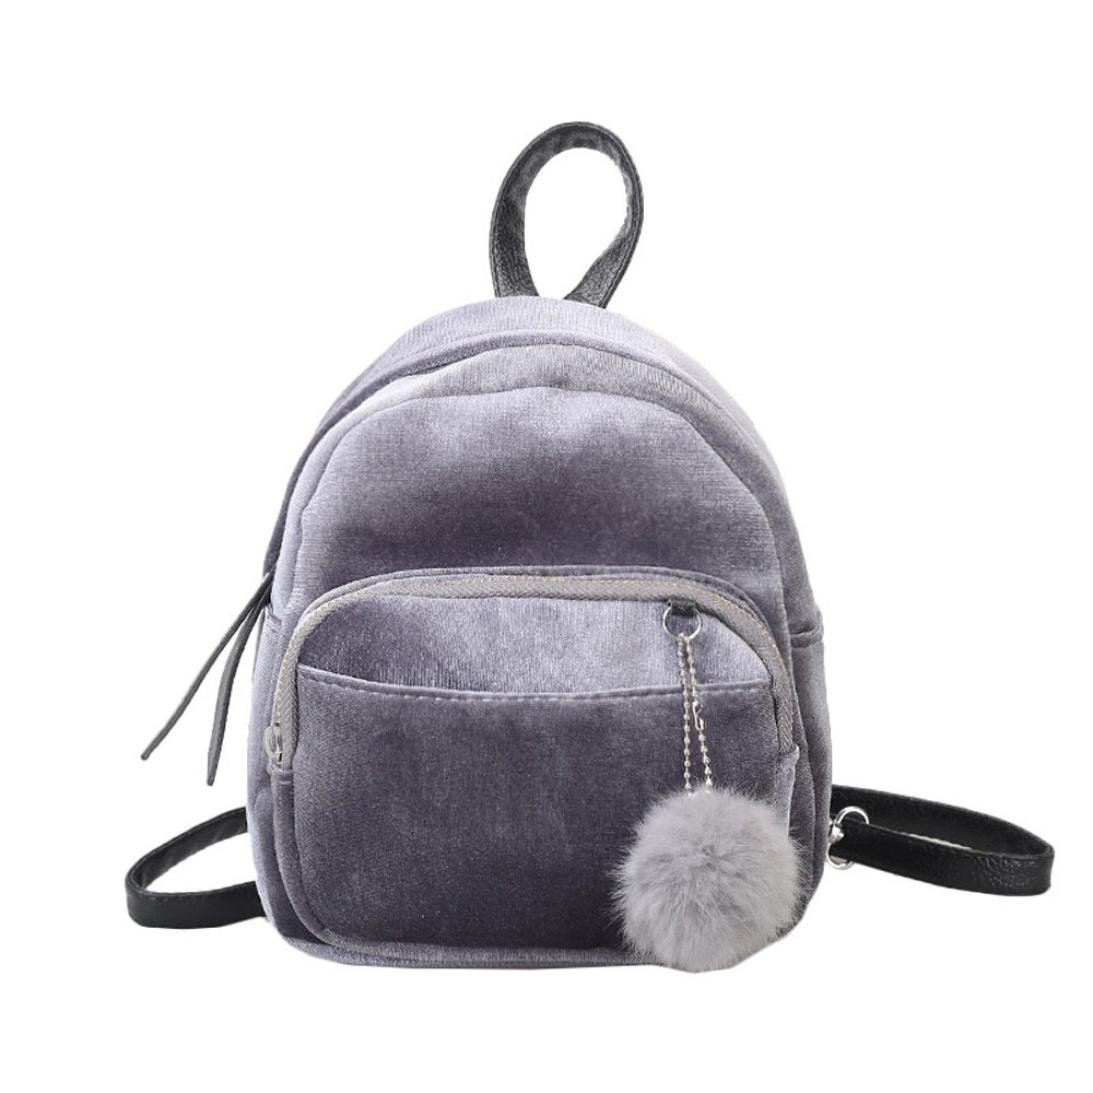 AfterSo Handbags & Wallets ガールズ 19cm/7.5\ Gray,velvet Backpack With Pom Pom B077ZS682N